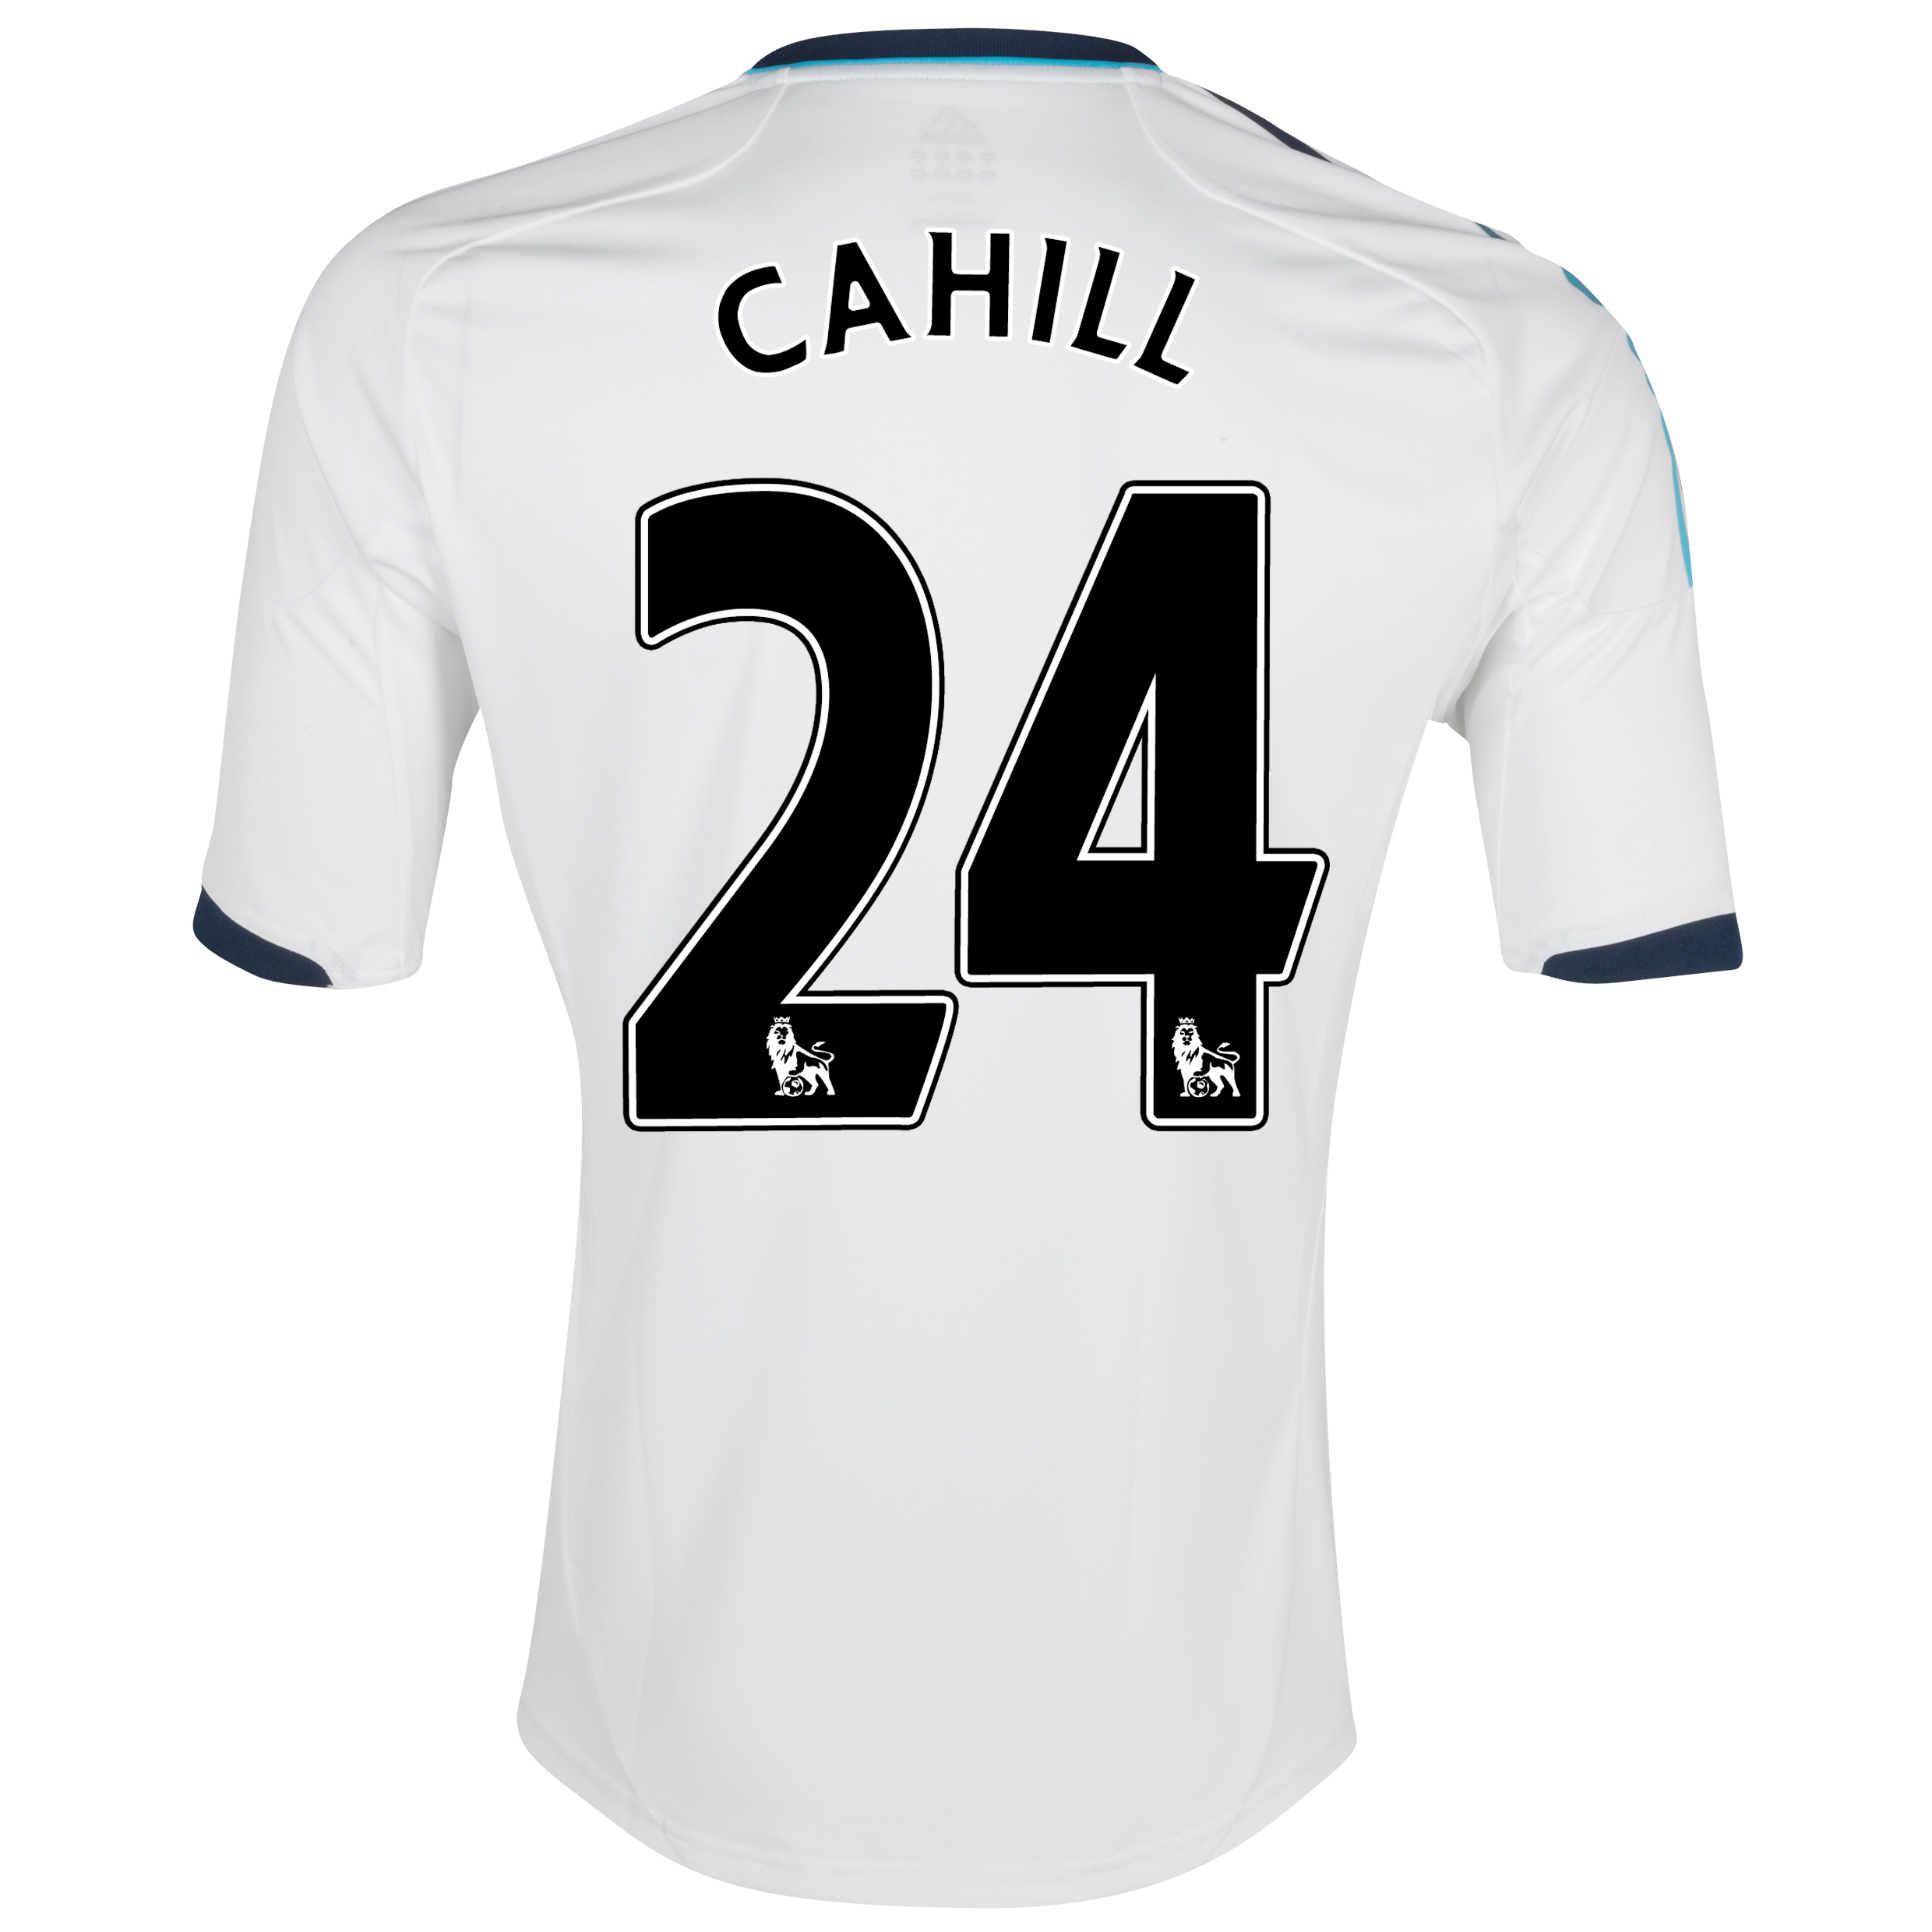 Chelsea Away Shirt 2012/13 - Kids with Cahill 24 printing